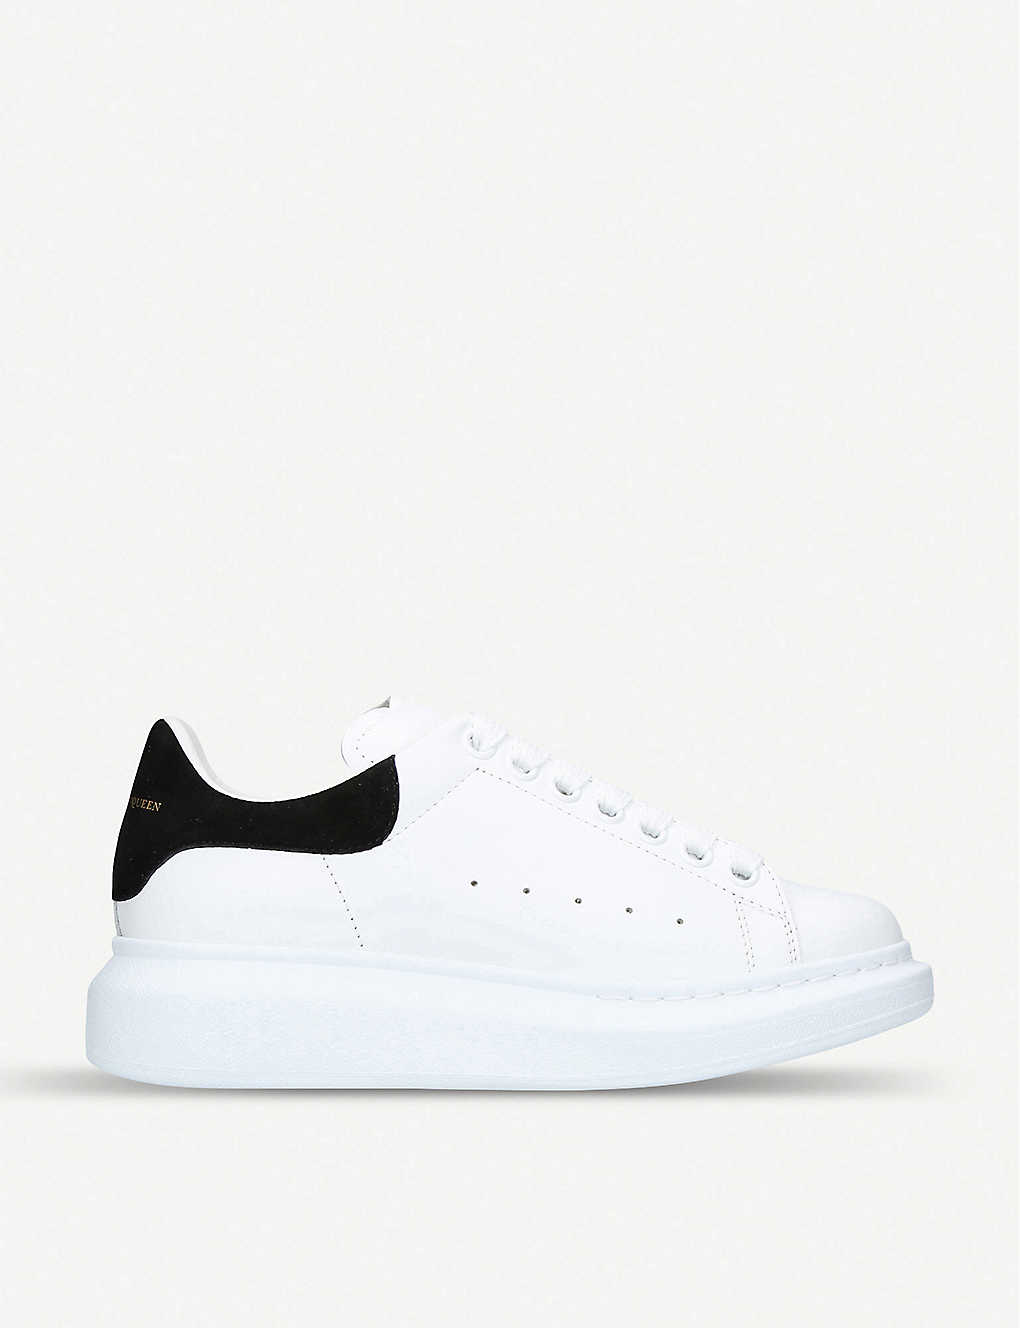 291e05118936da ALEXANDER MCQUEEN - Runway leather platform trainers | Selfridges.com